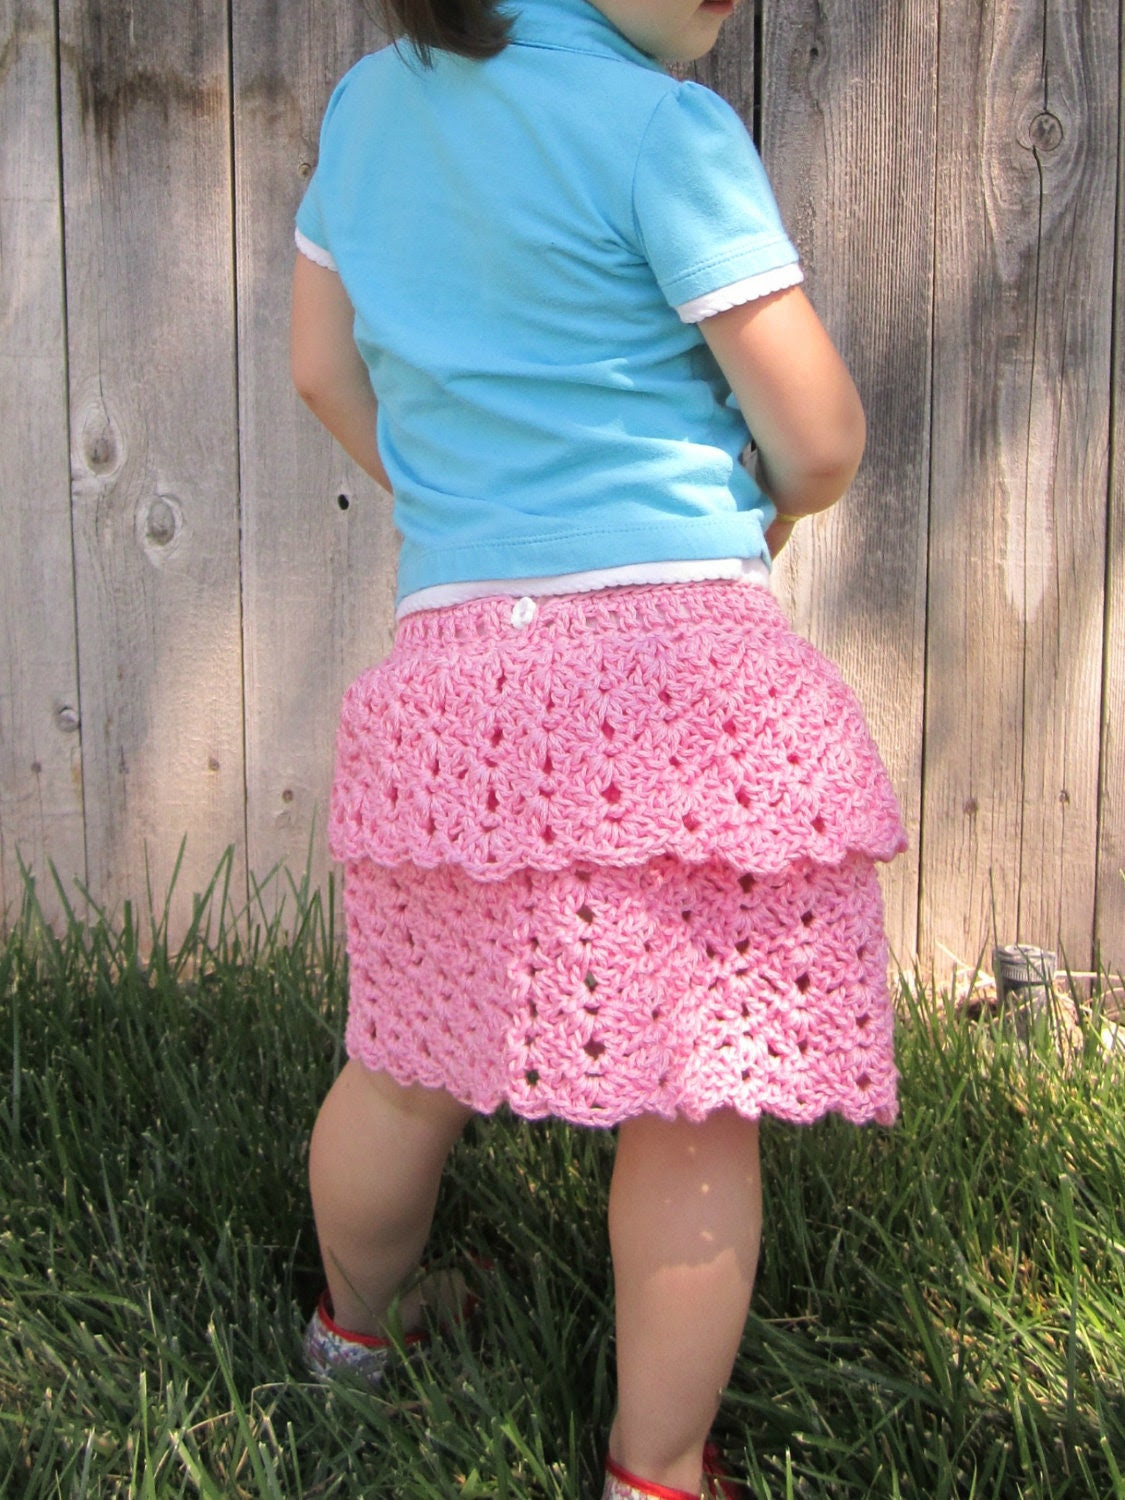 Fun Karla Skirt Crochet Pattern Sizes 6-9 Months, 12 Months and 2T to 5T